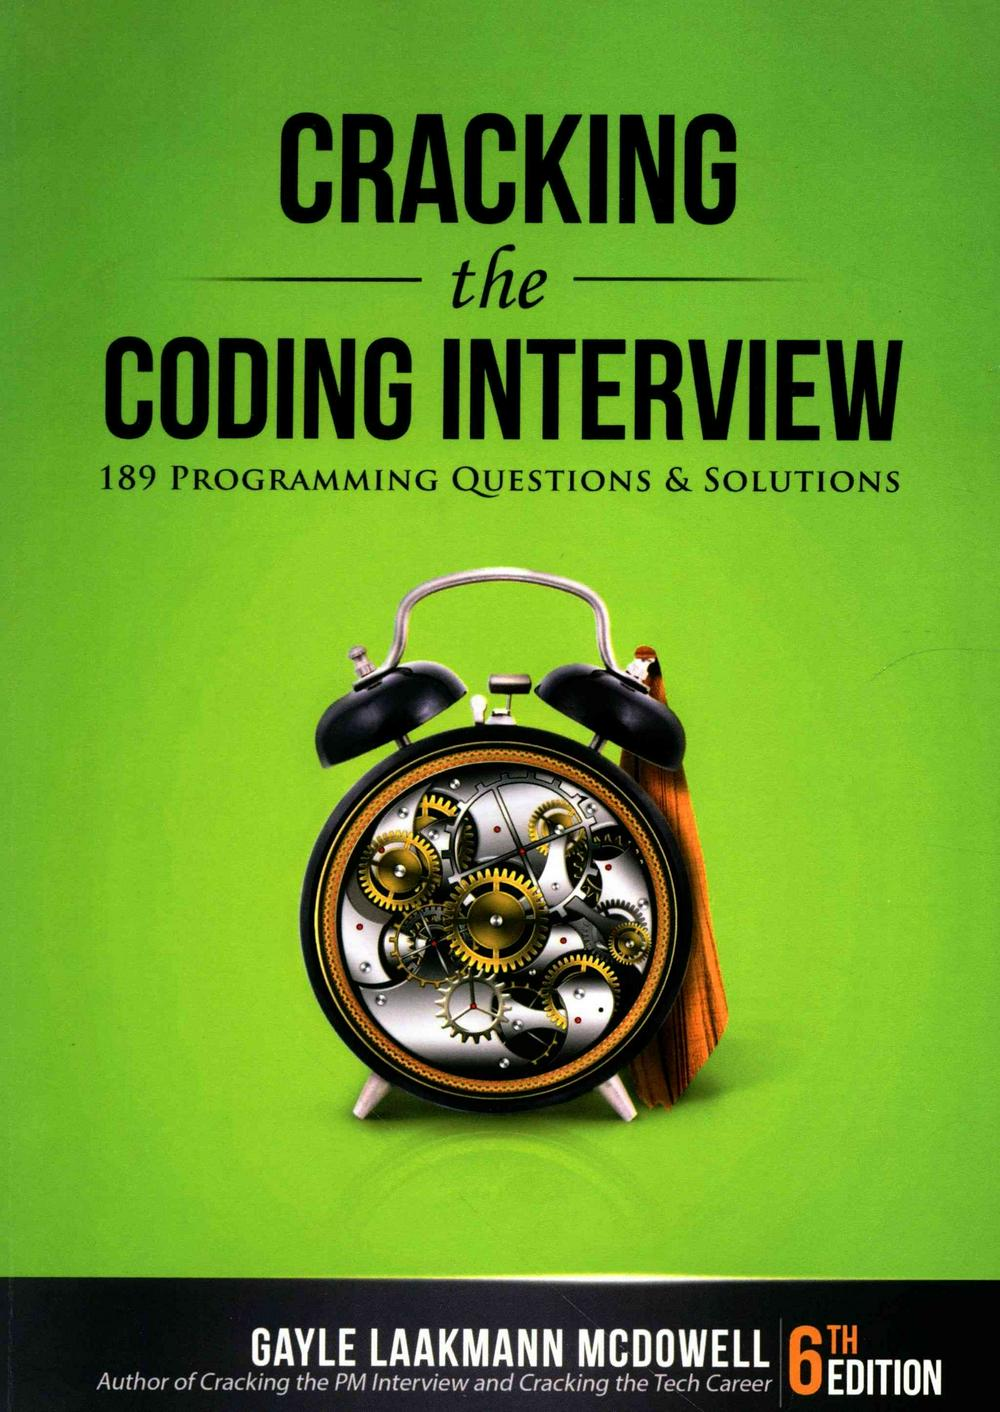 Cracking the Coding Interview, 6th Edition: 189 Programming Questions and Solutions by Gayle Laakmann McDowell, ISBN: 9780984782857